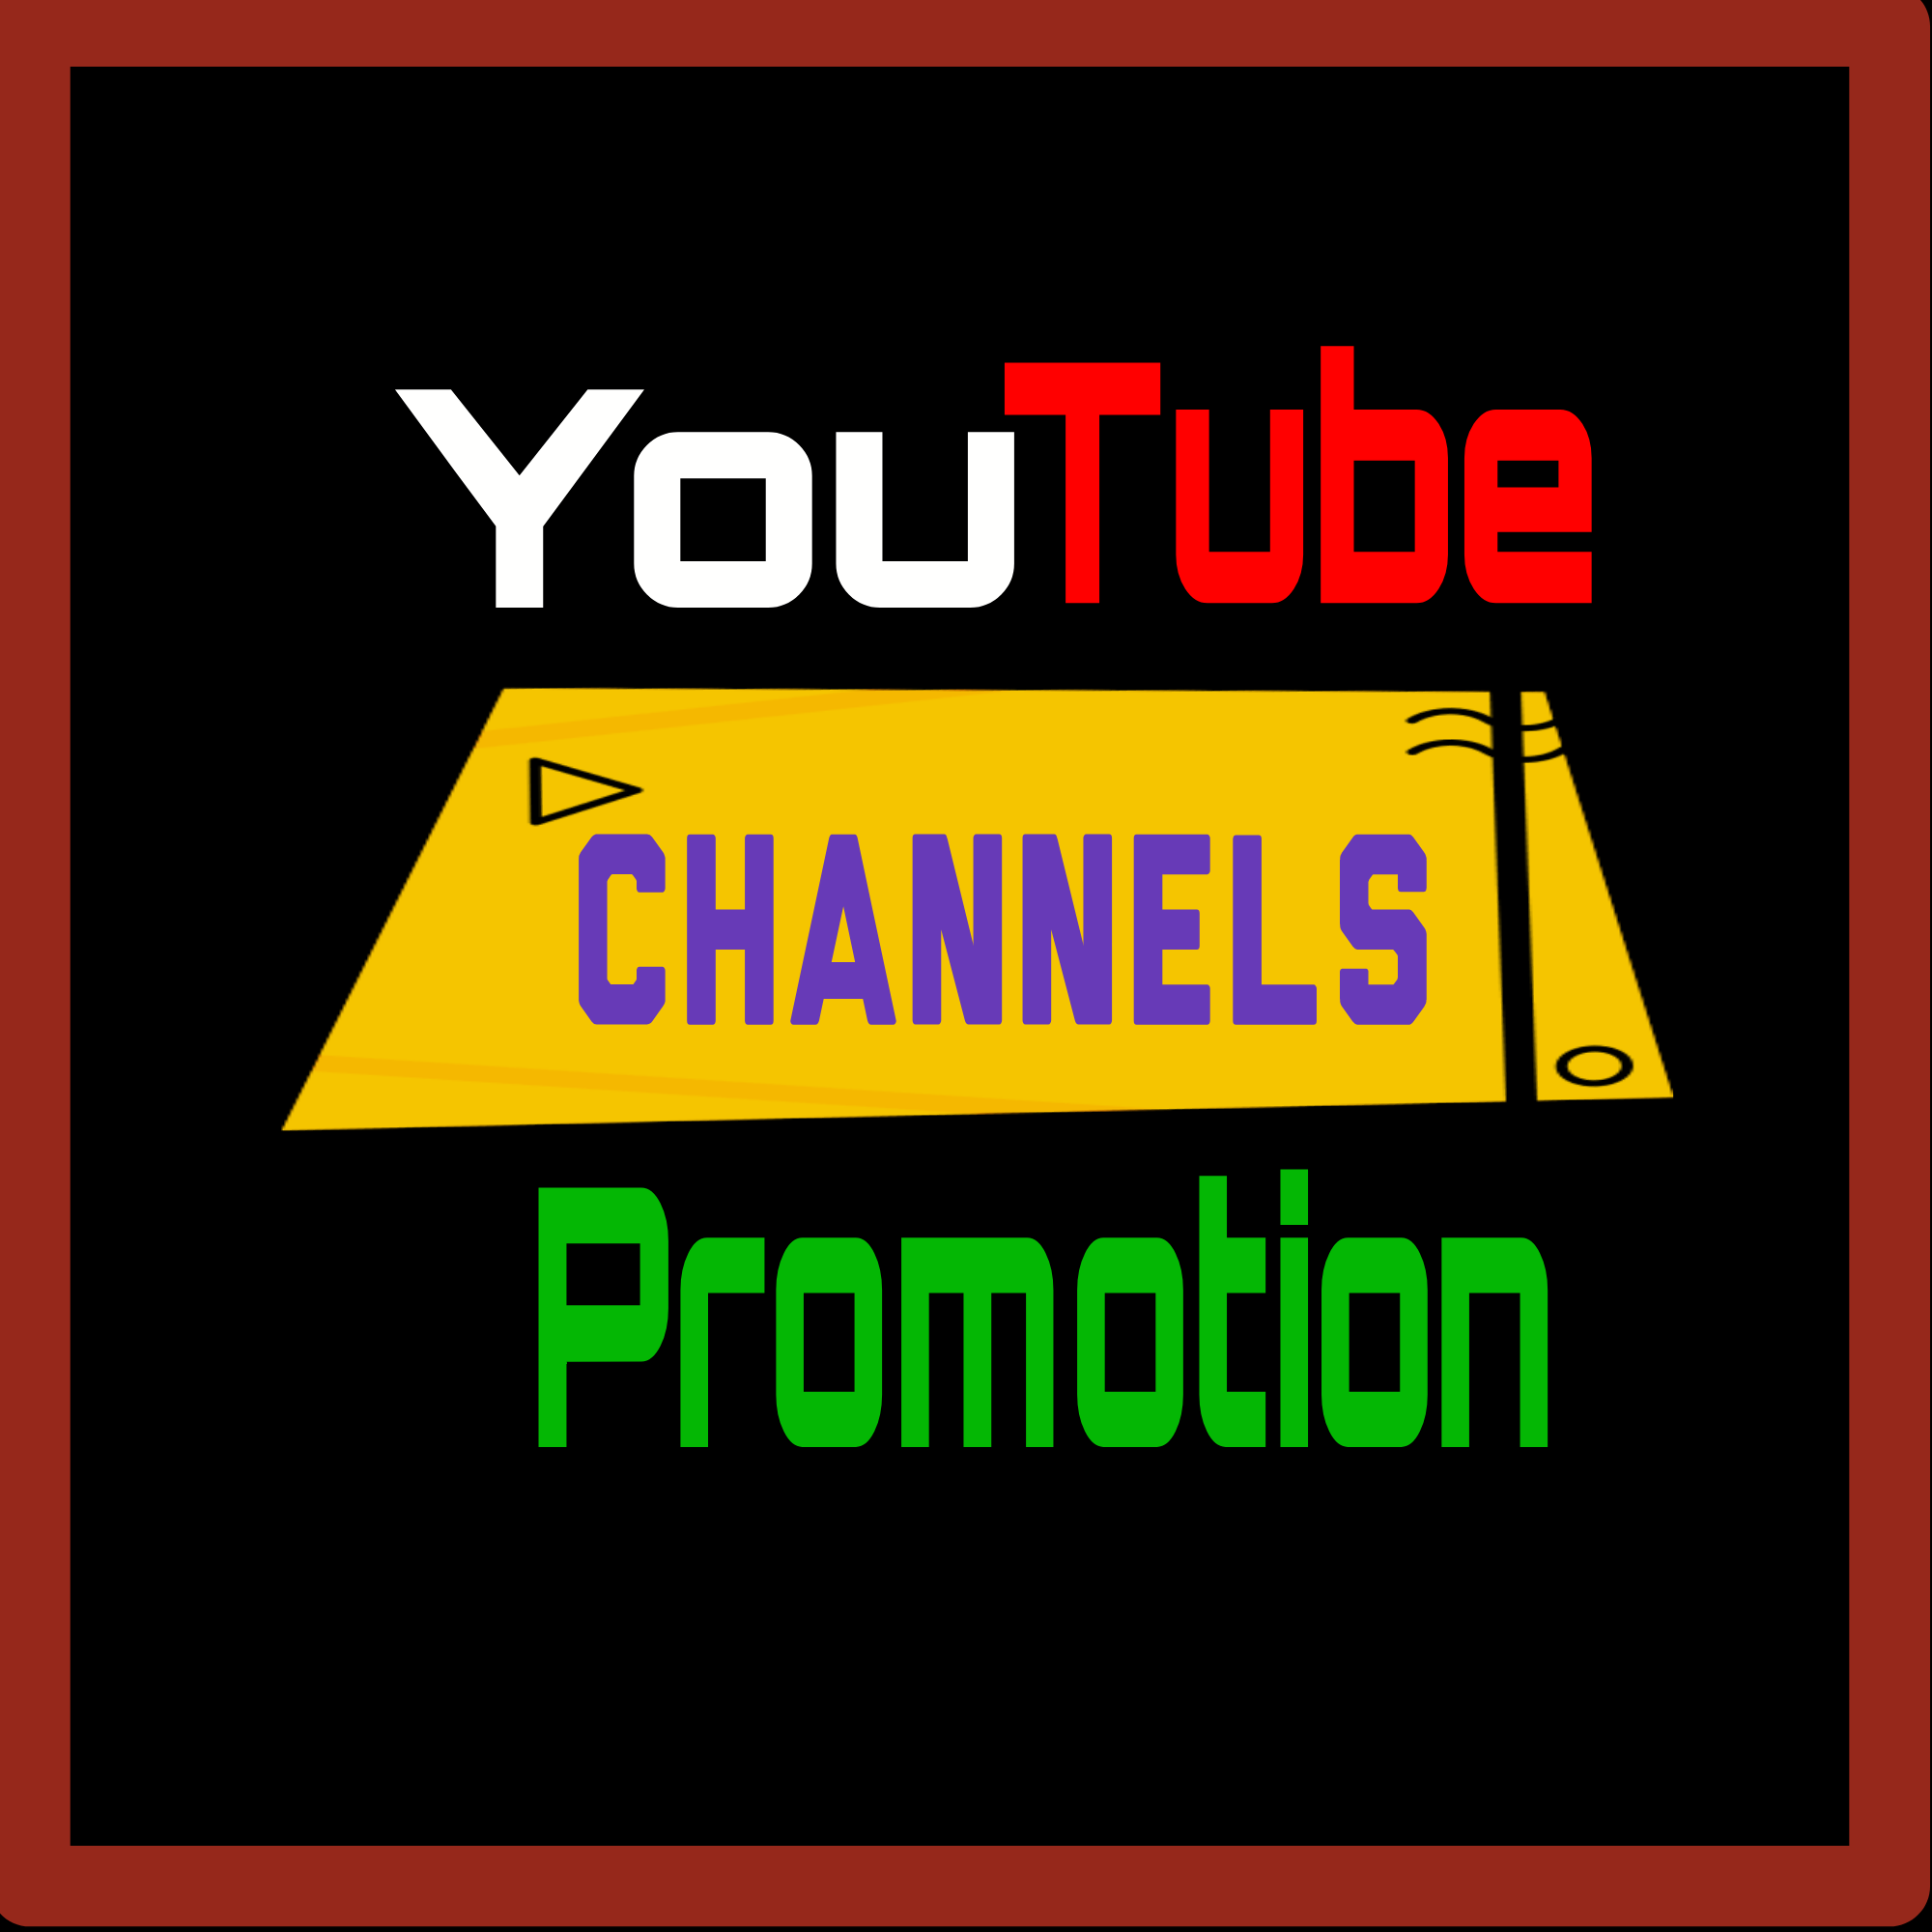 Channels Promotion in organic way